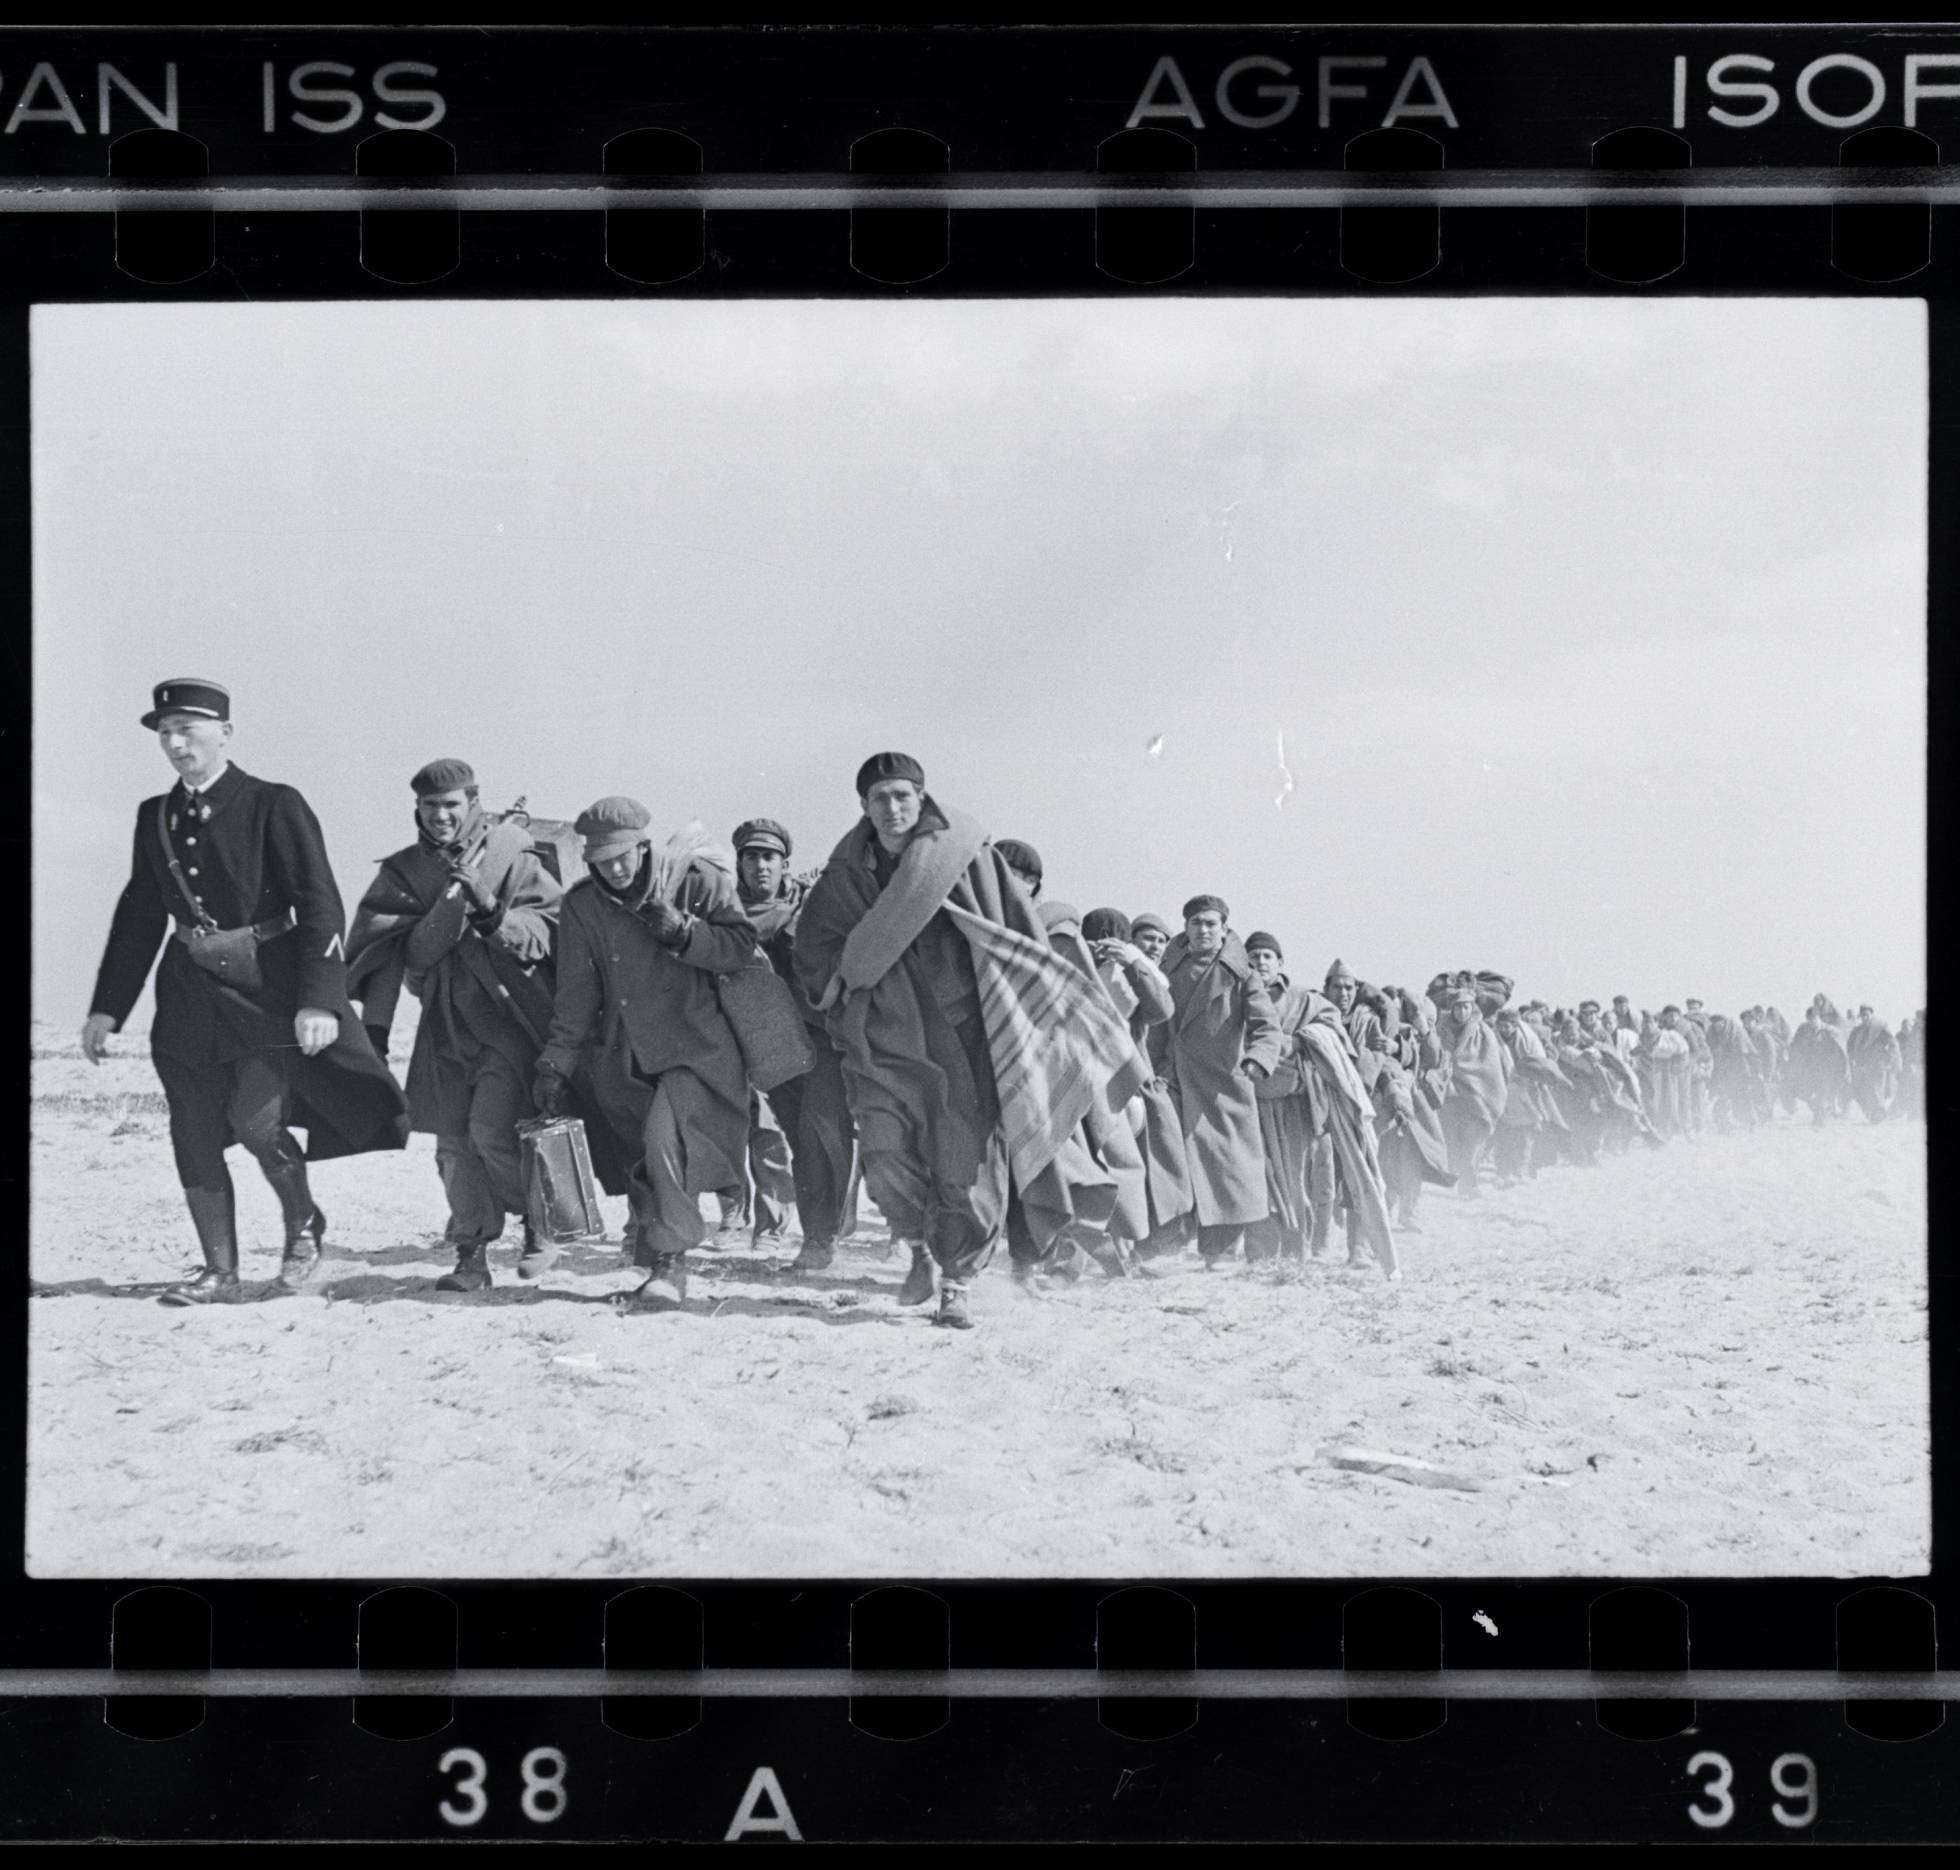 Robert Capa,  Refugees walking on the beach, in the French internment camp for Republican exiles, Le Barcarès, France, March 1939 .  Image credit: International Center for Photography / Magnum, via  Wikimedia Commons .